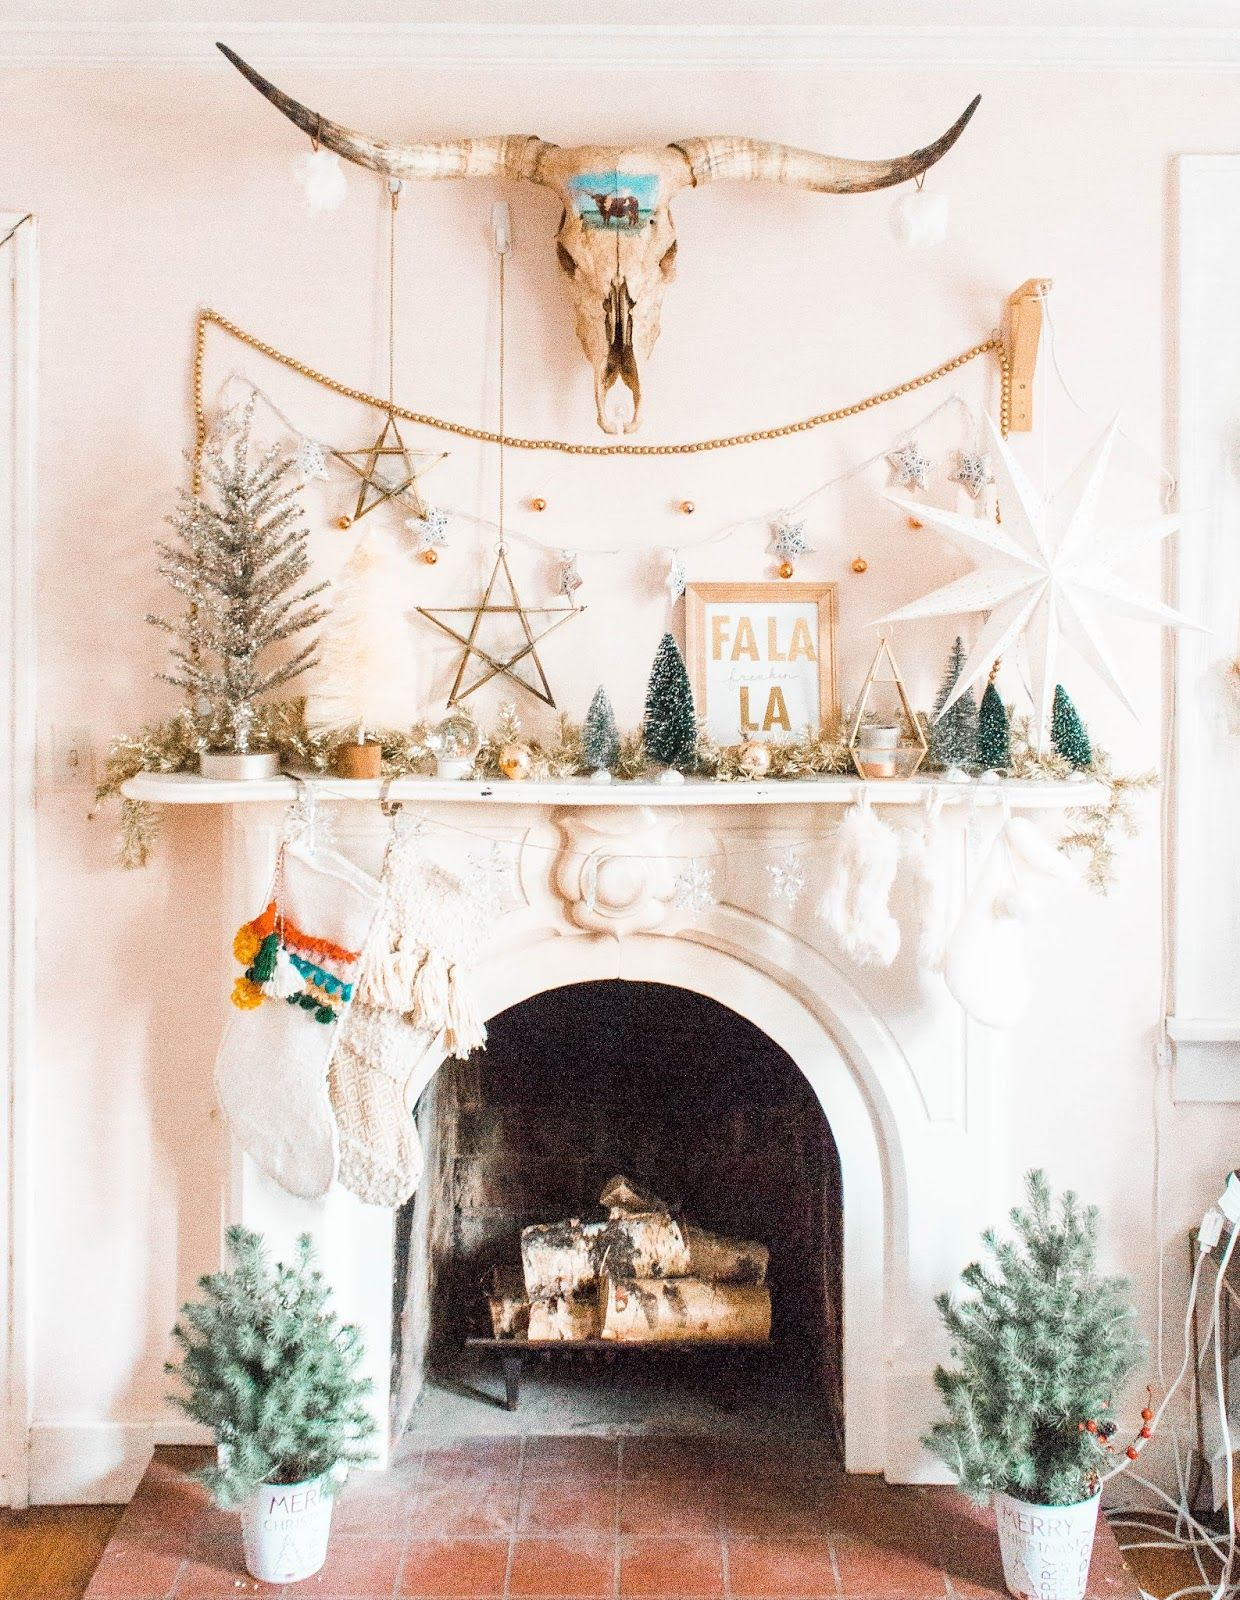 62 Christmas Mantel Decorations Ideas For Holiday Fireplace